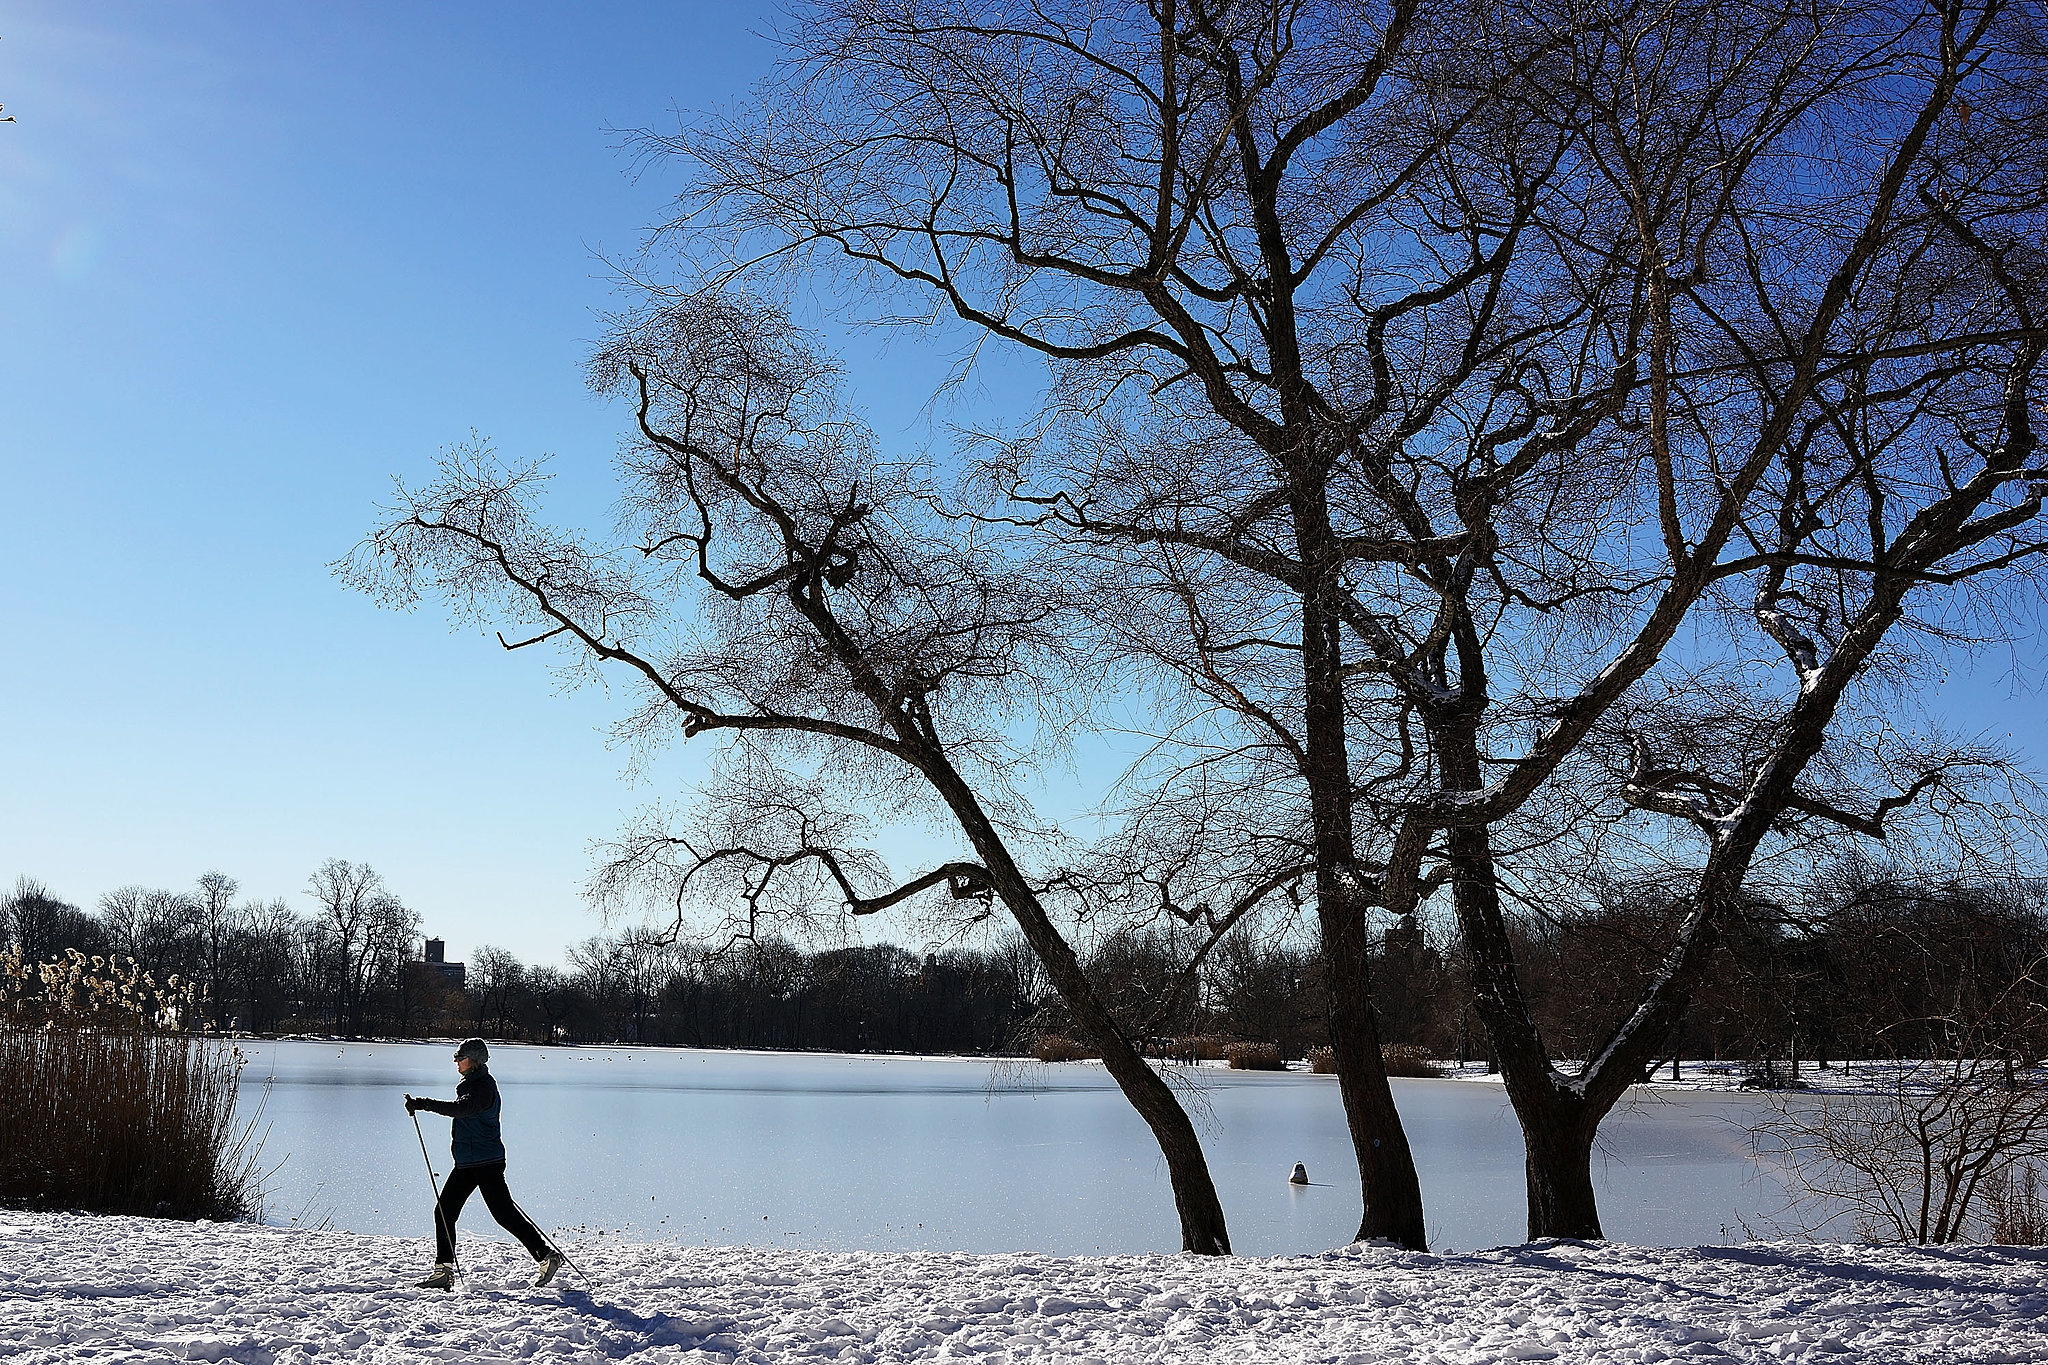 A woman skied her way through Brooklyn's Prospect Park in NYC.